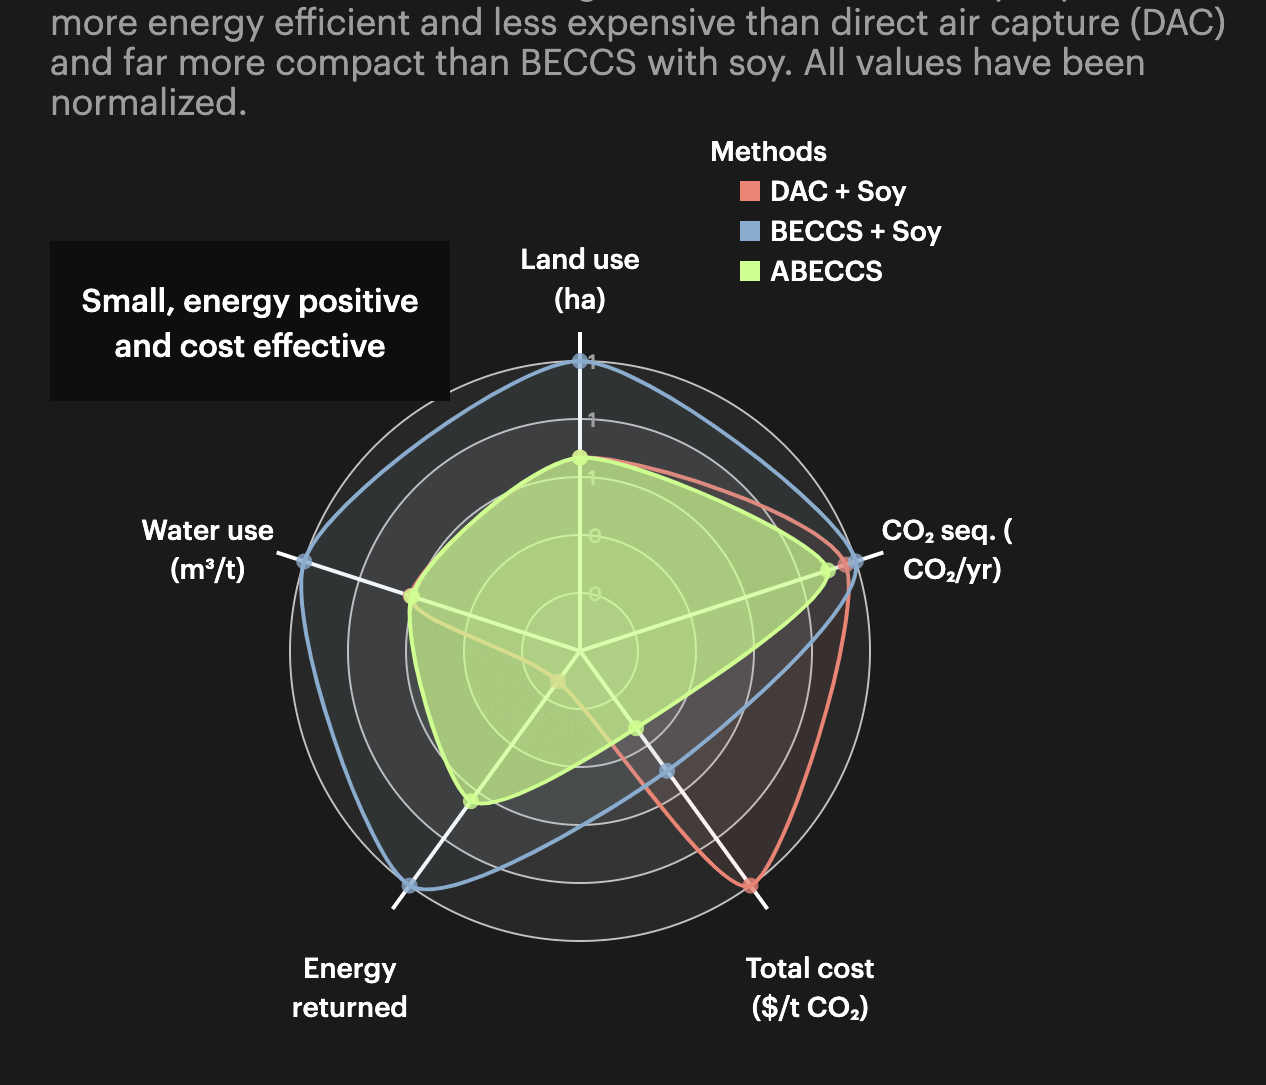 A radar chart comparing metrics such as land use, water use, and CO2 across multiple carbon capture methods.